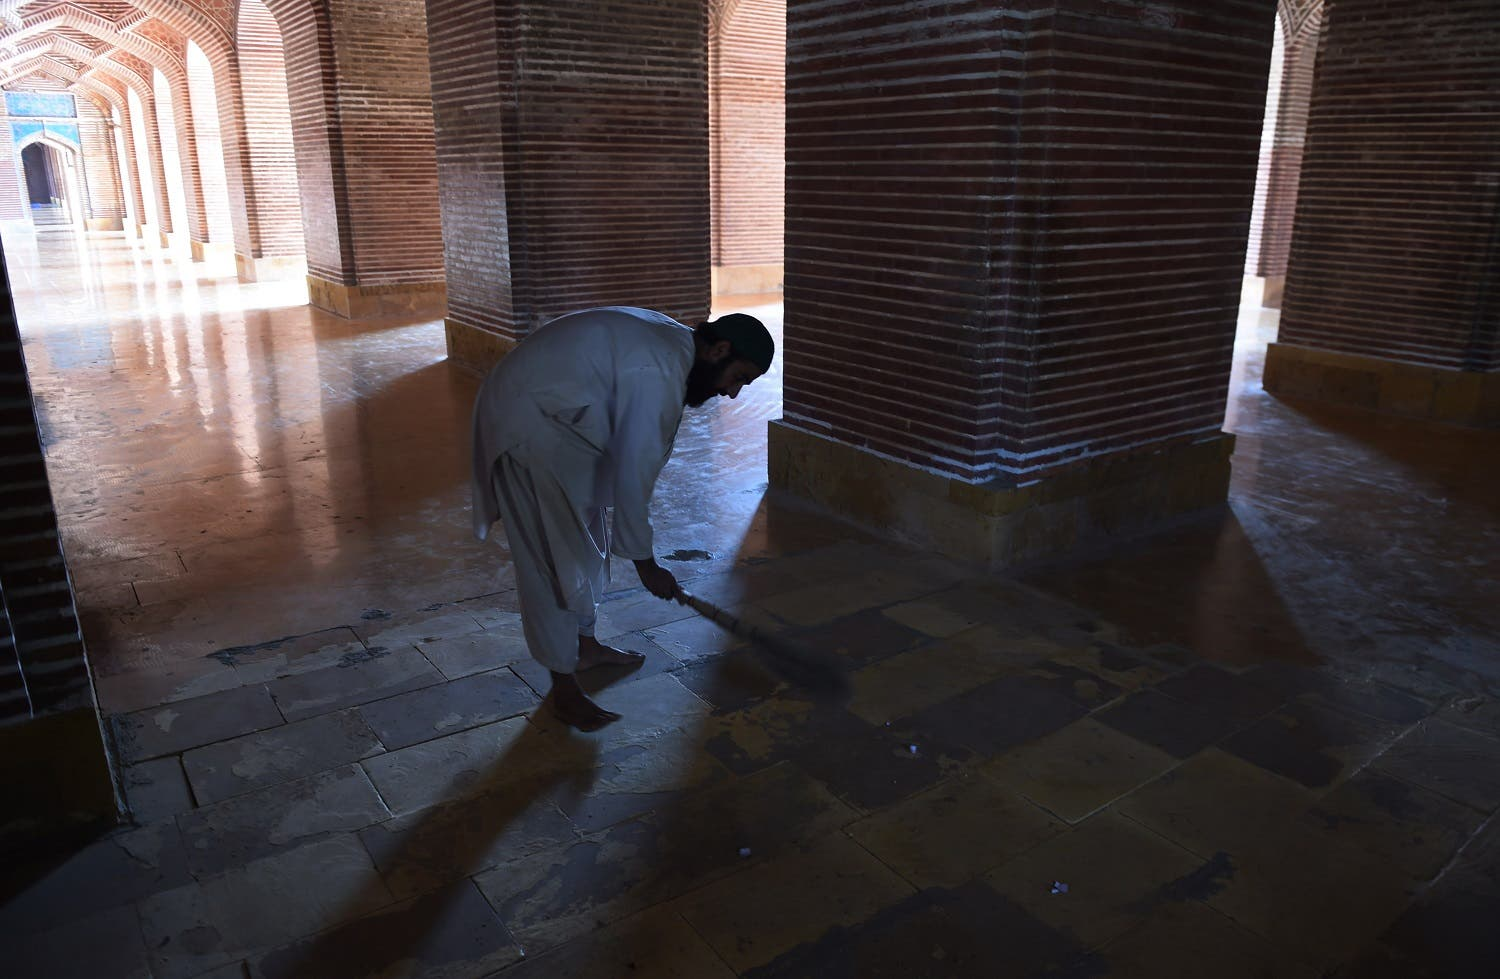 Completed in 1647 by thousands of labourers, the Shah Jahani mosque is a rare example of Pakistan's Mughal heritage outside of the country's cultural centre of Lahore. (AFP)